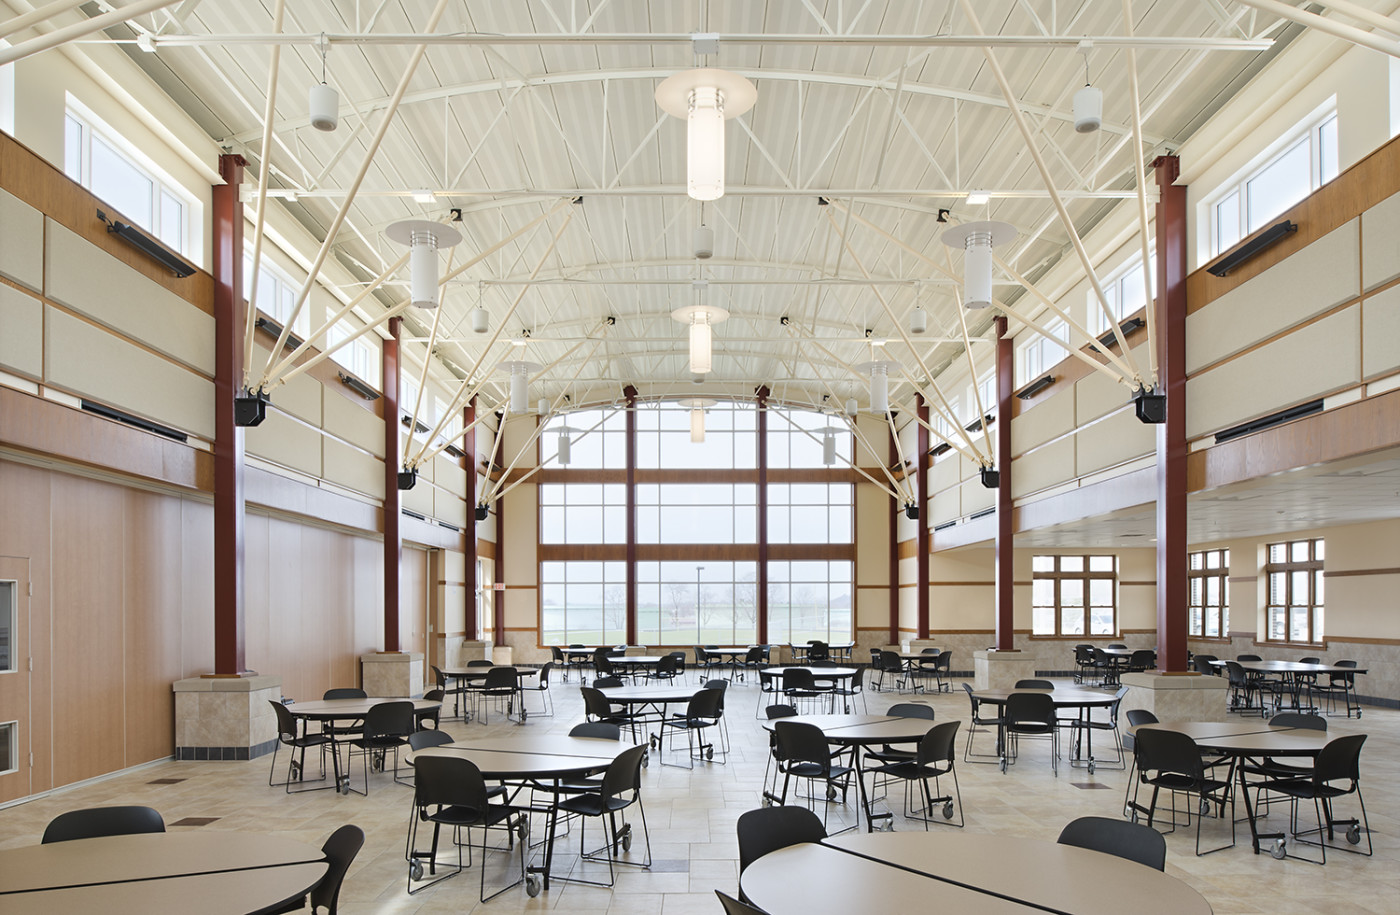 South Portland High School 001